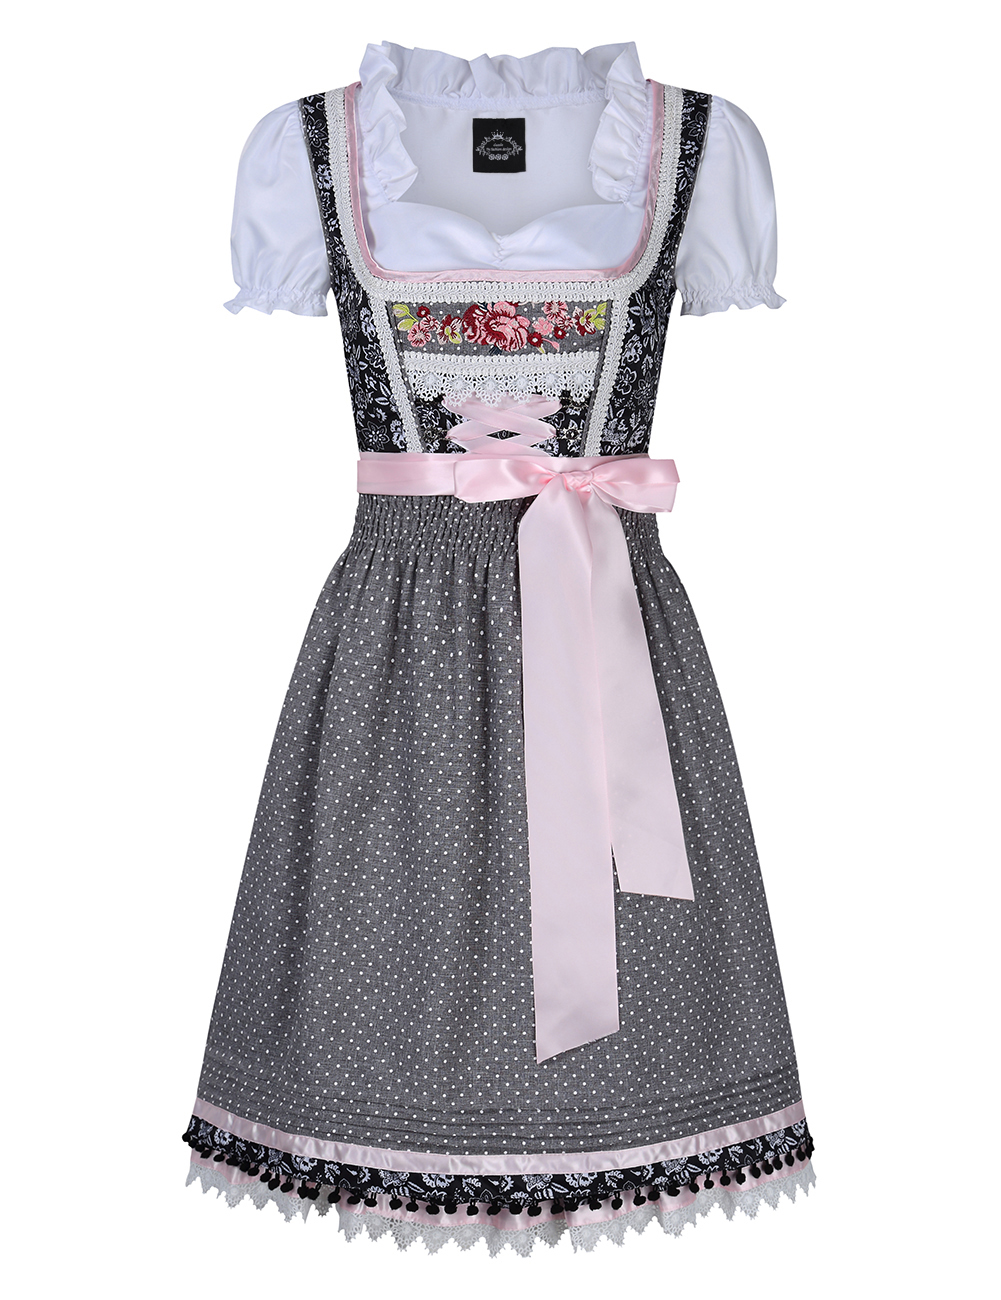 [EU Direct] Women's Embroidery Lace Up Dirndl Dress Three PCS Suits for German Beer Festival Costumes